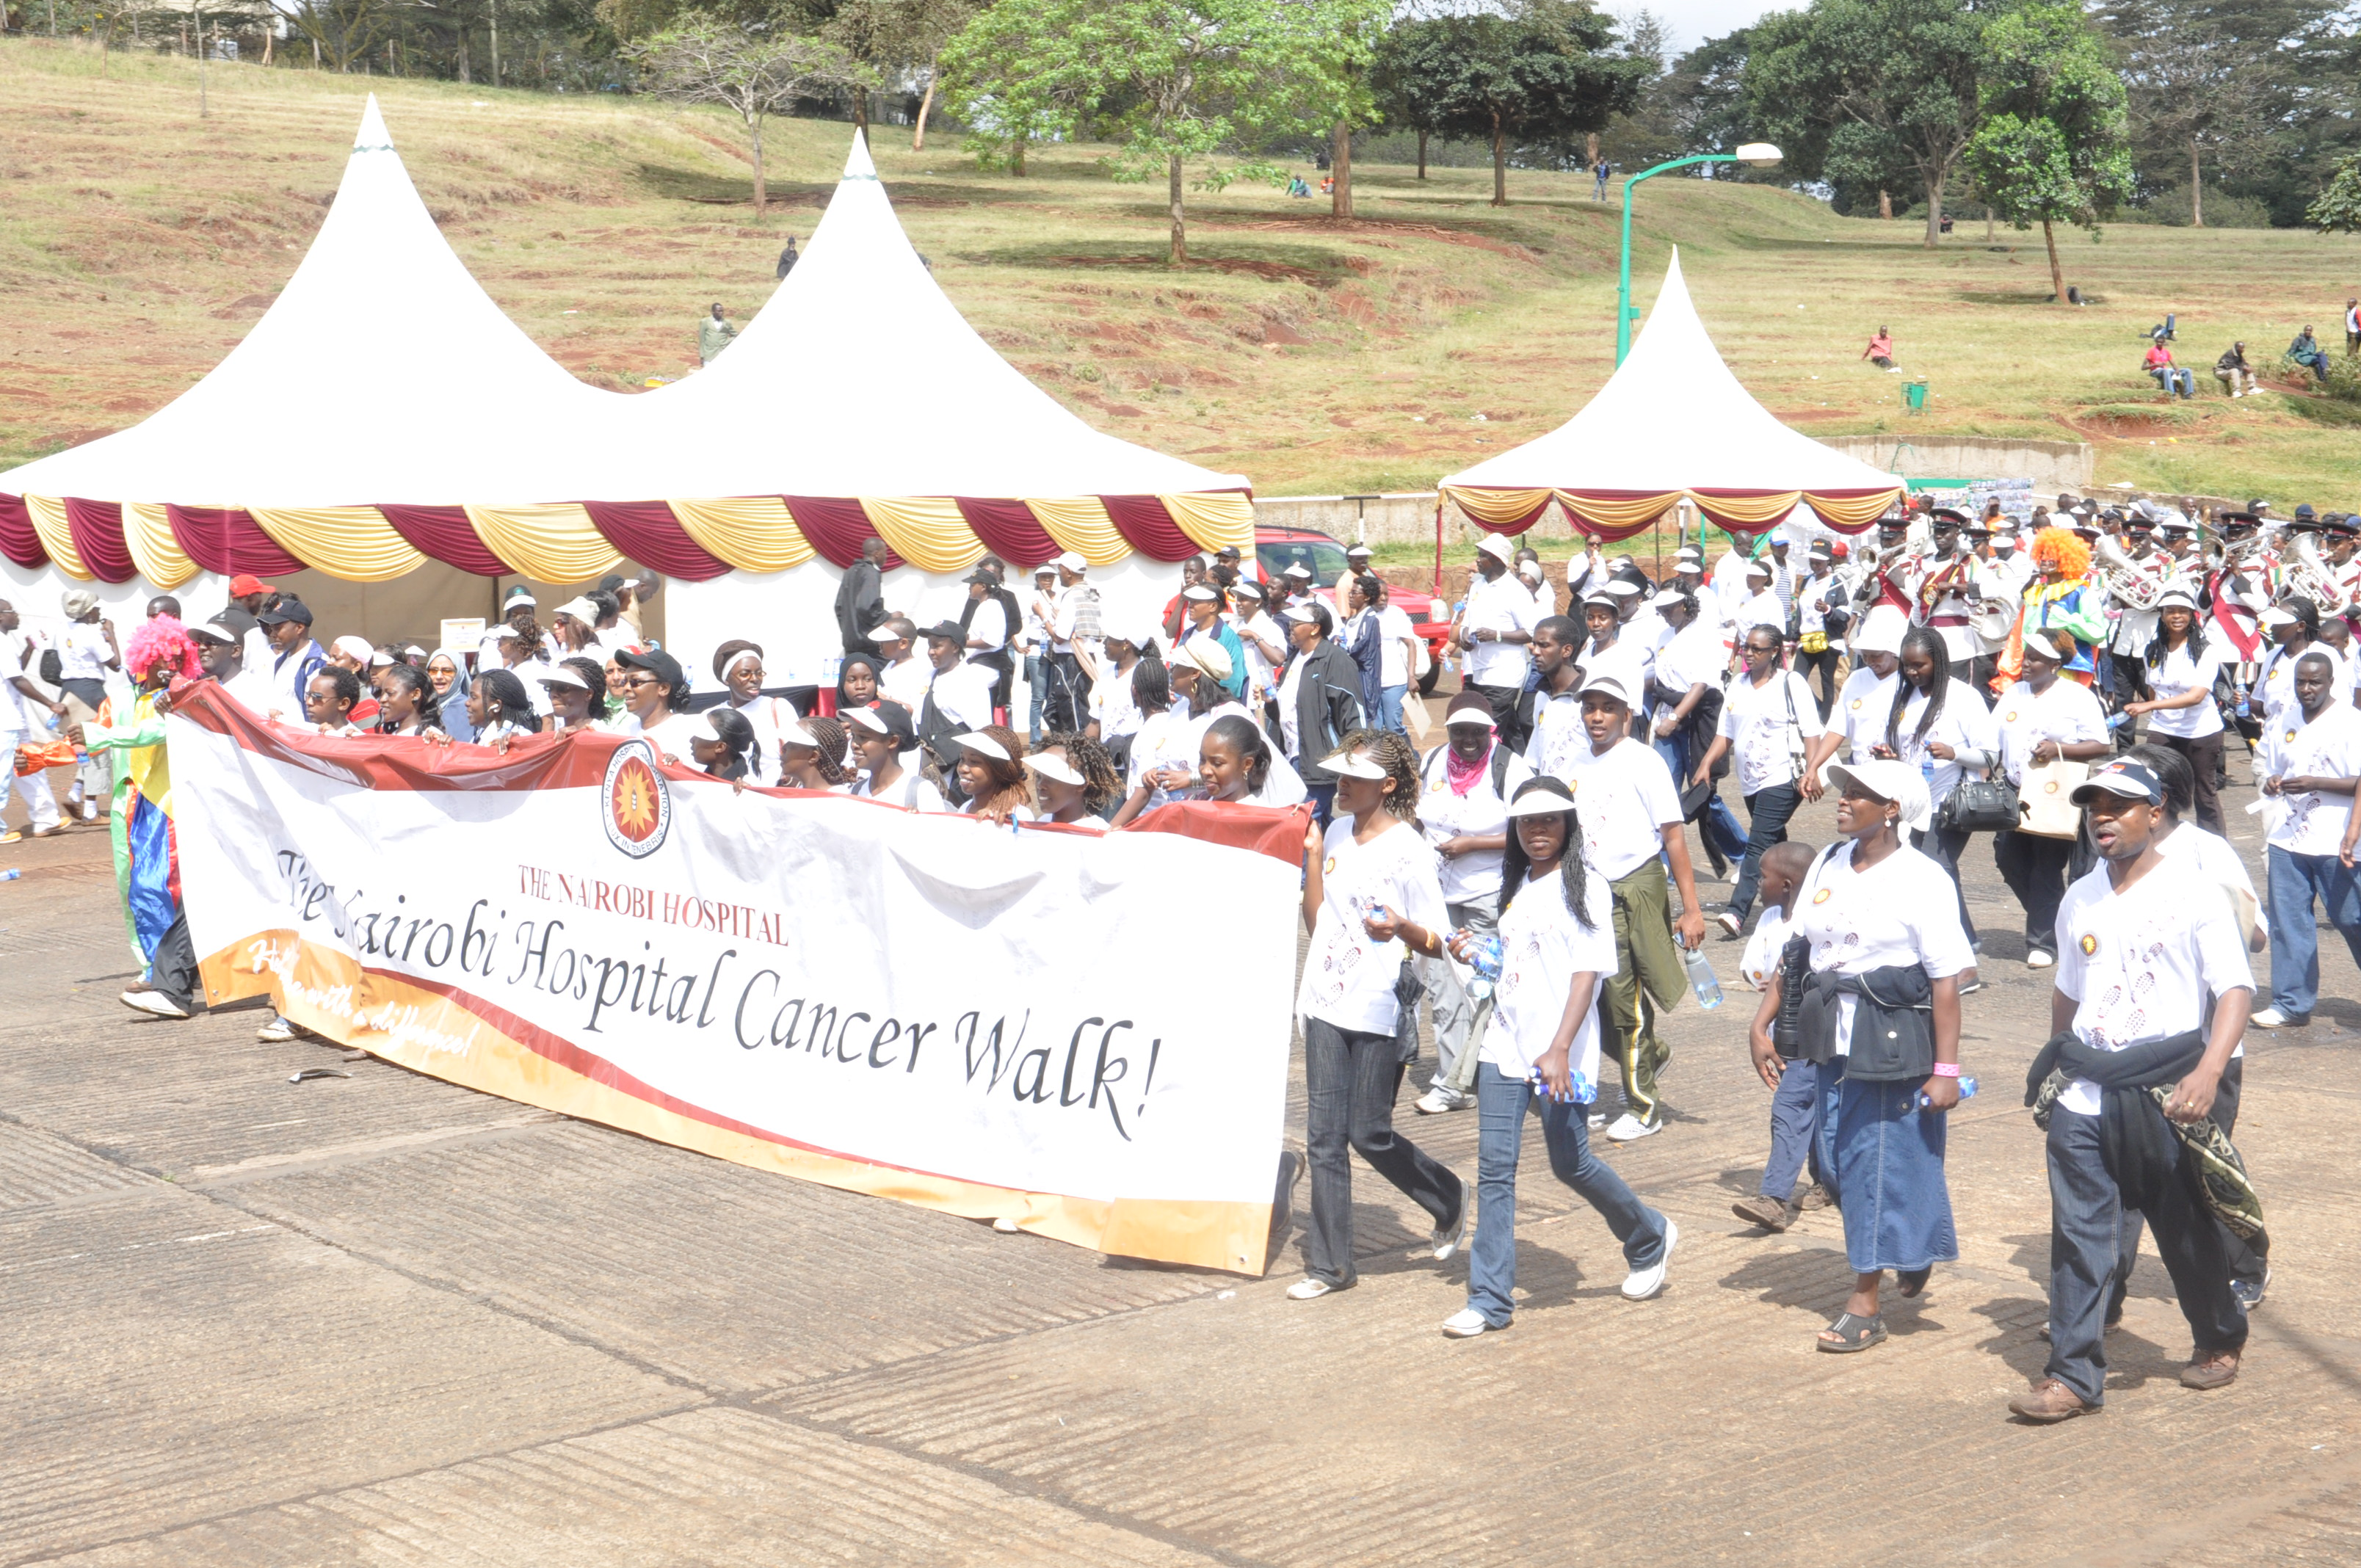 Having completed the cancer awareness walk held by Nairobi hospital